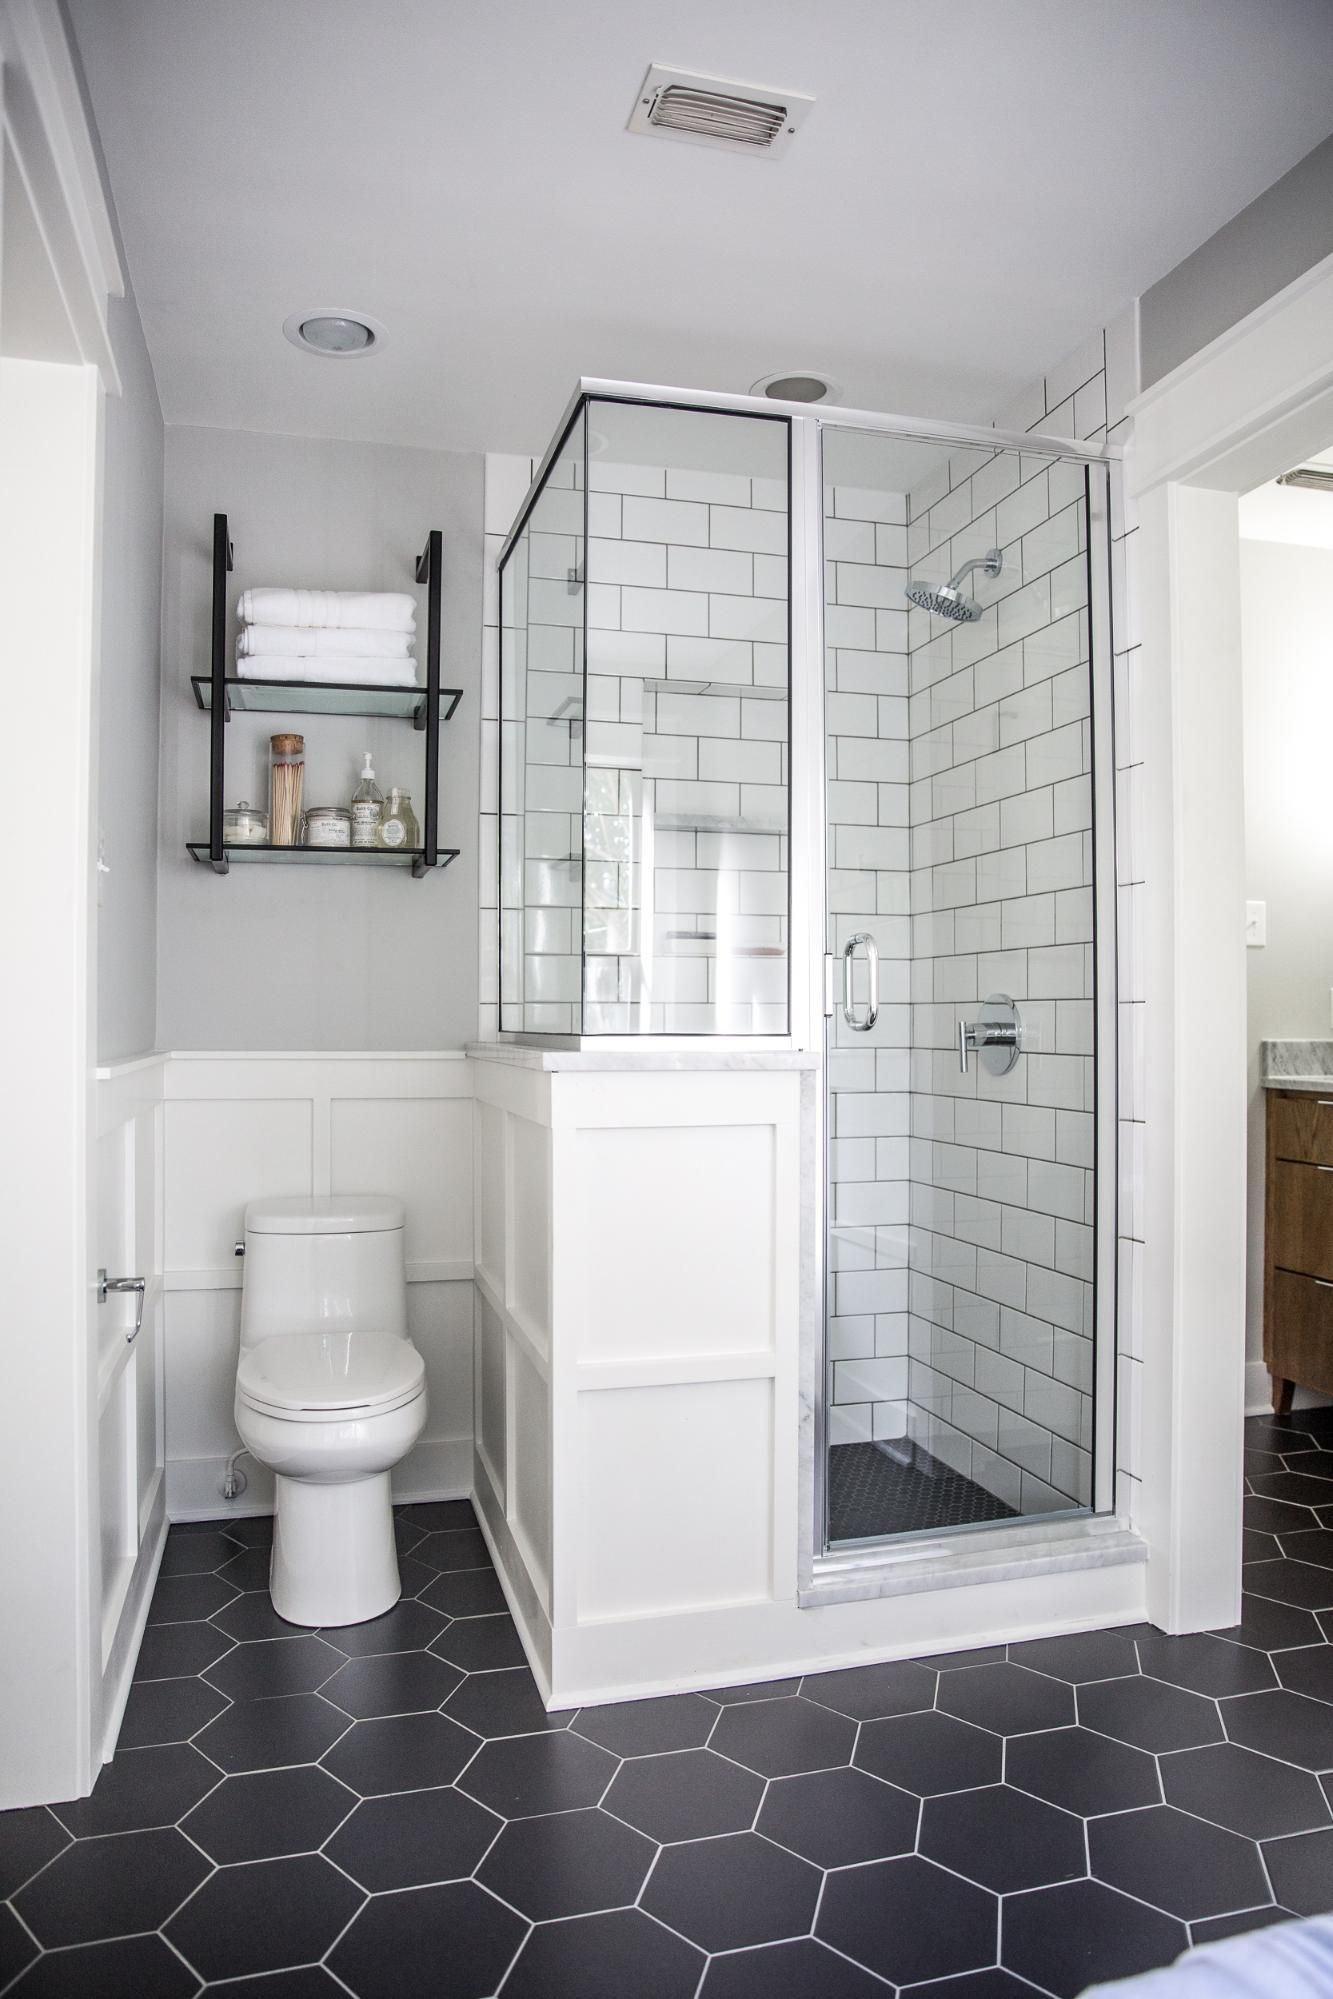 Fliesen Badezimmer Pinterest A Master Bathroom Renovation Bad Pinterest Fliesen